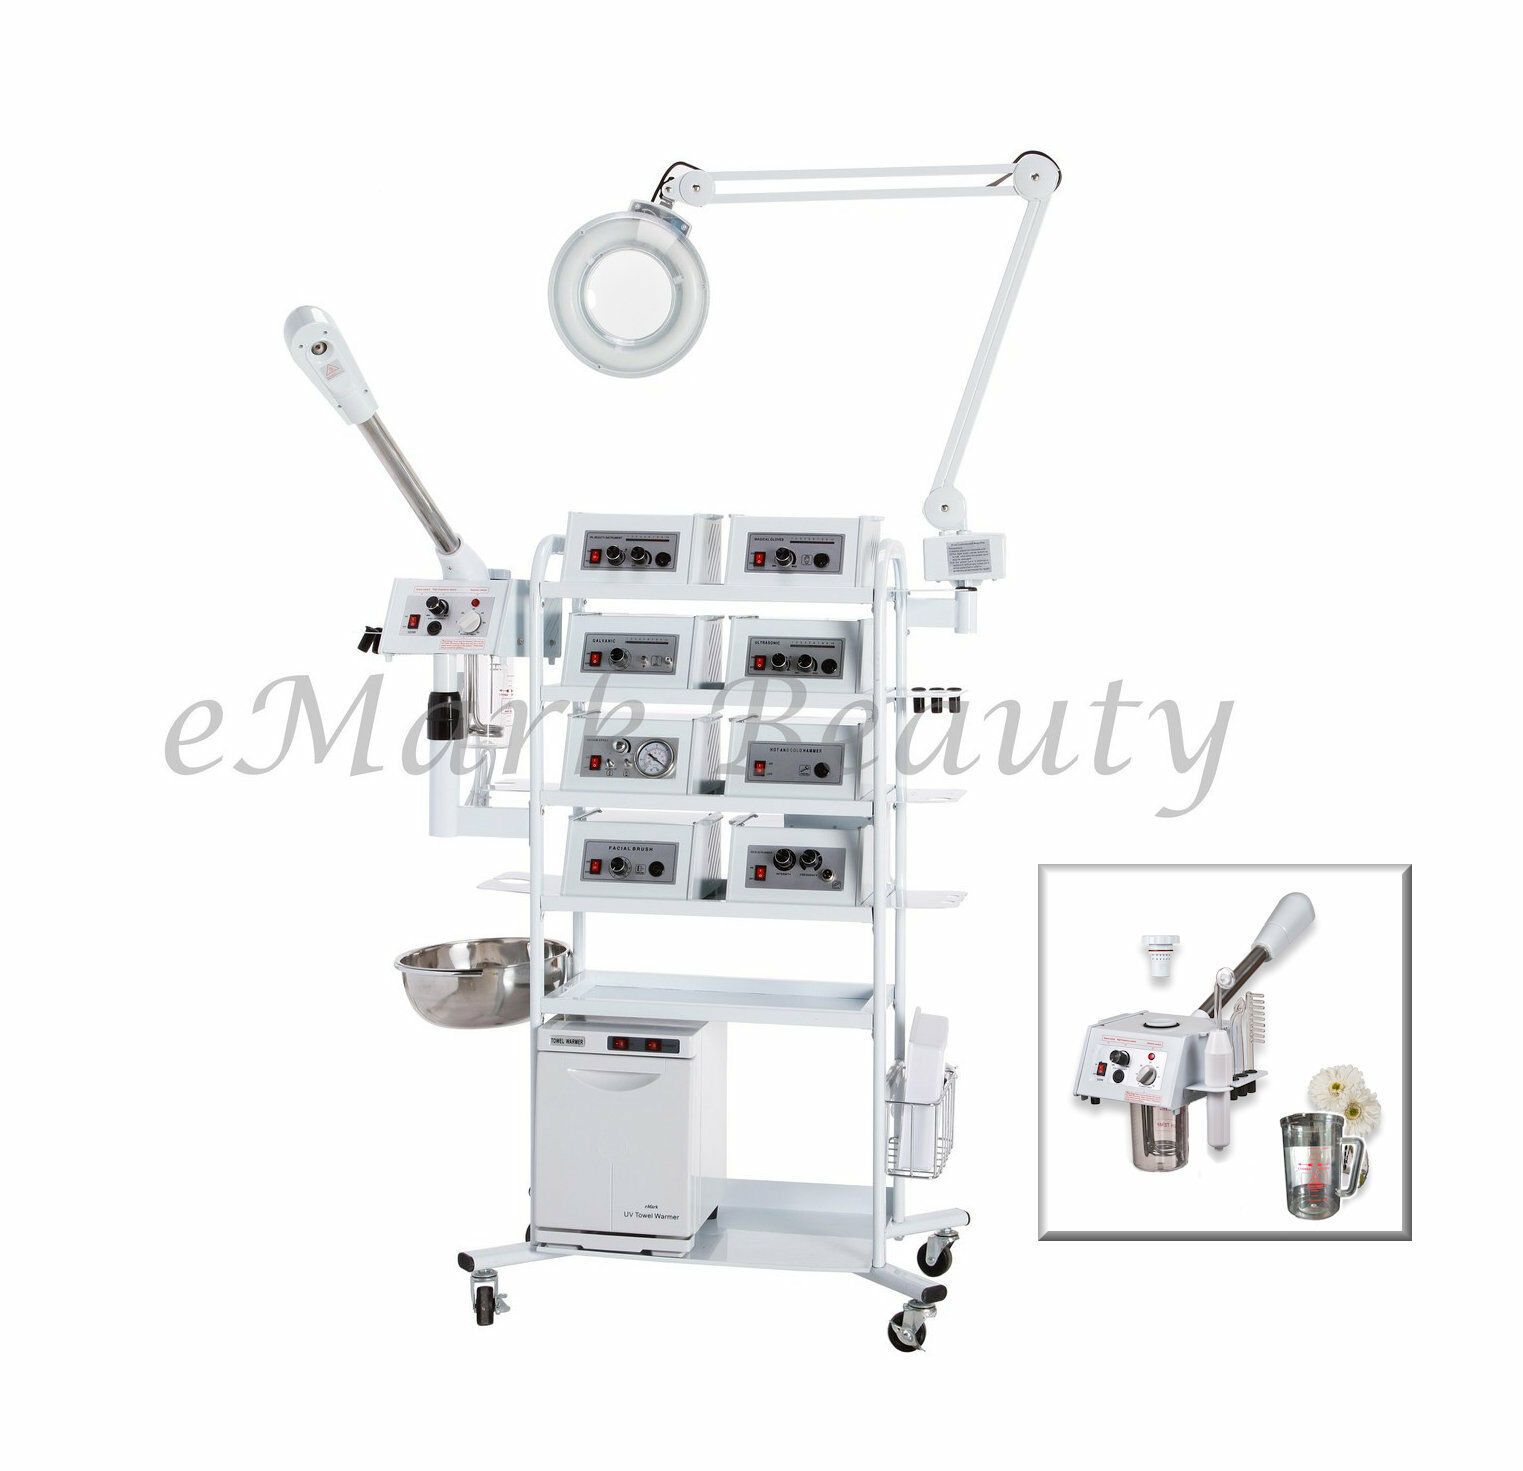 eMark Beauty 18 in 1 T4DW Multifunction Facial Machine Ozone